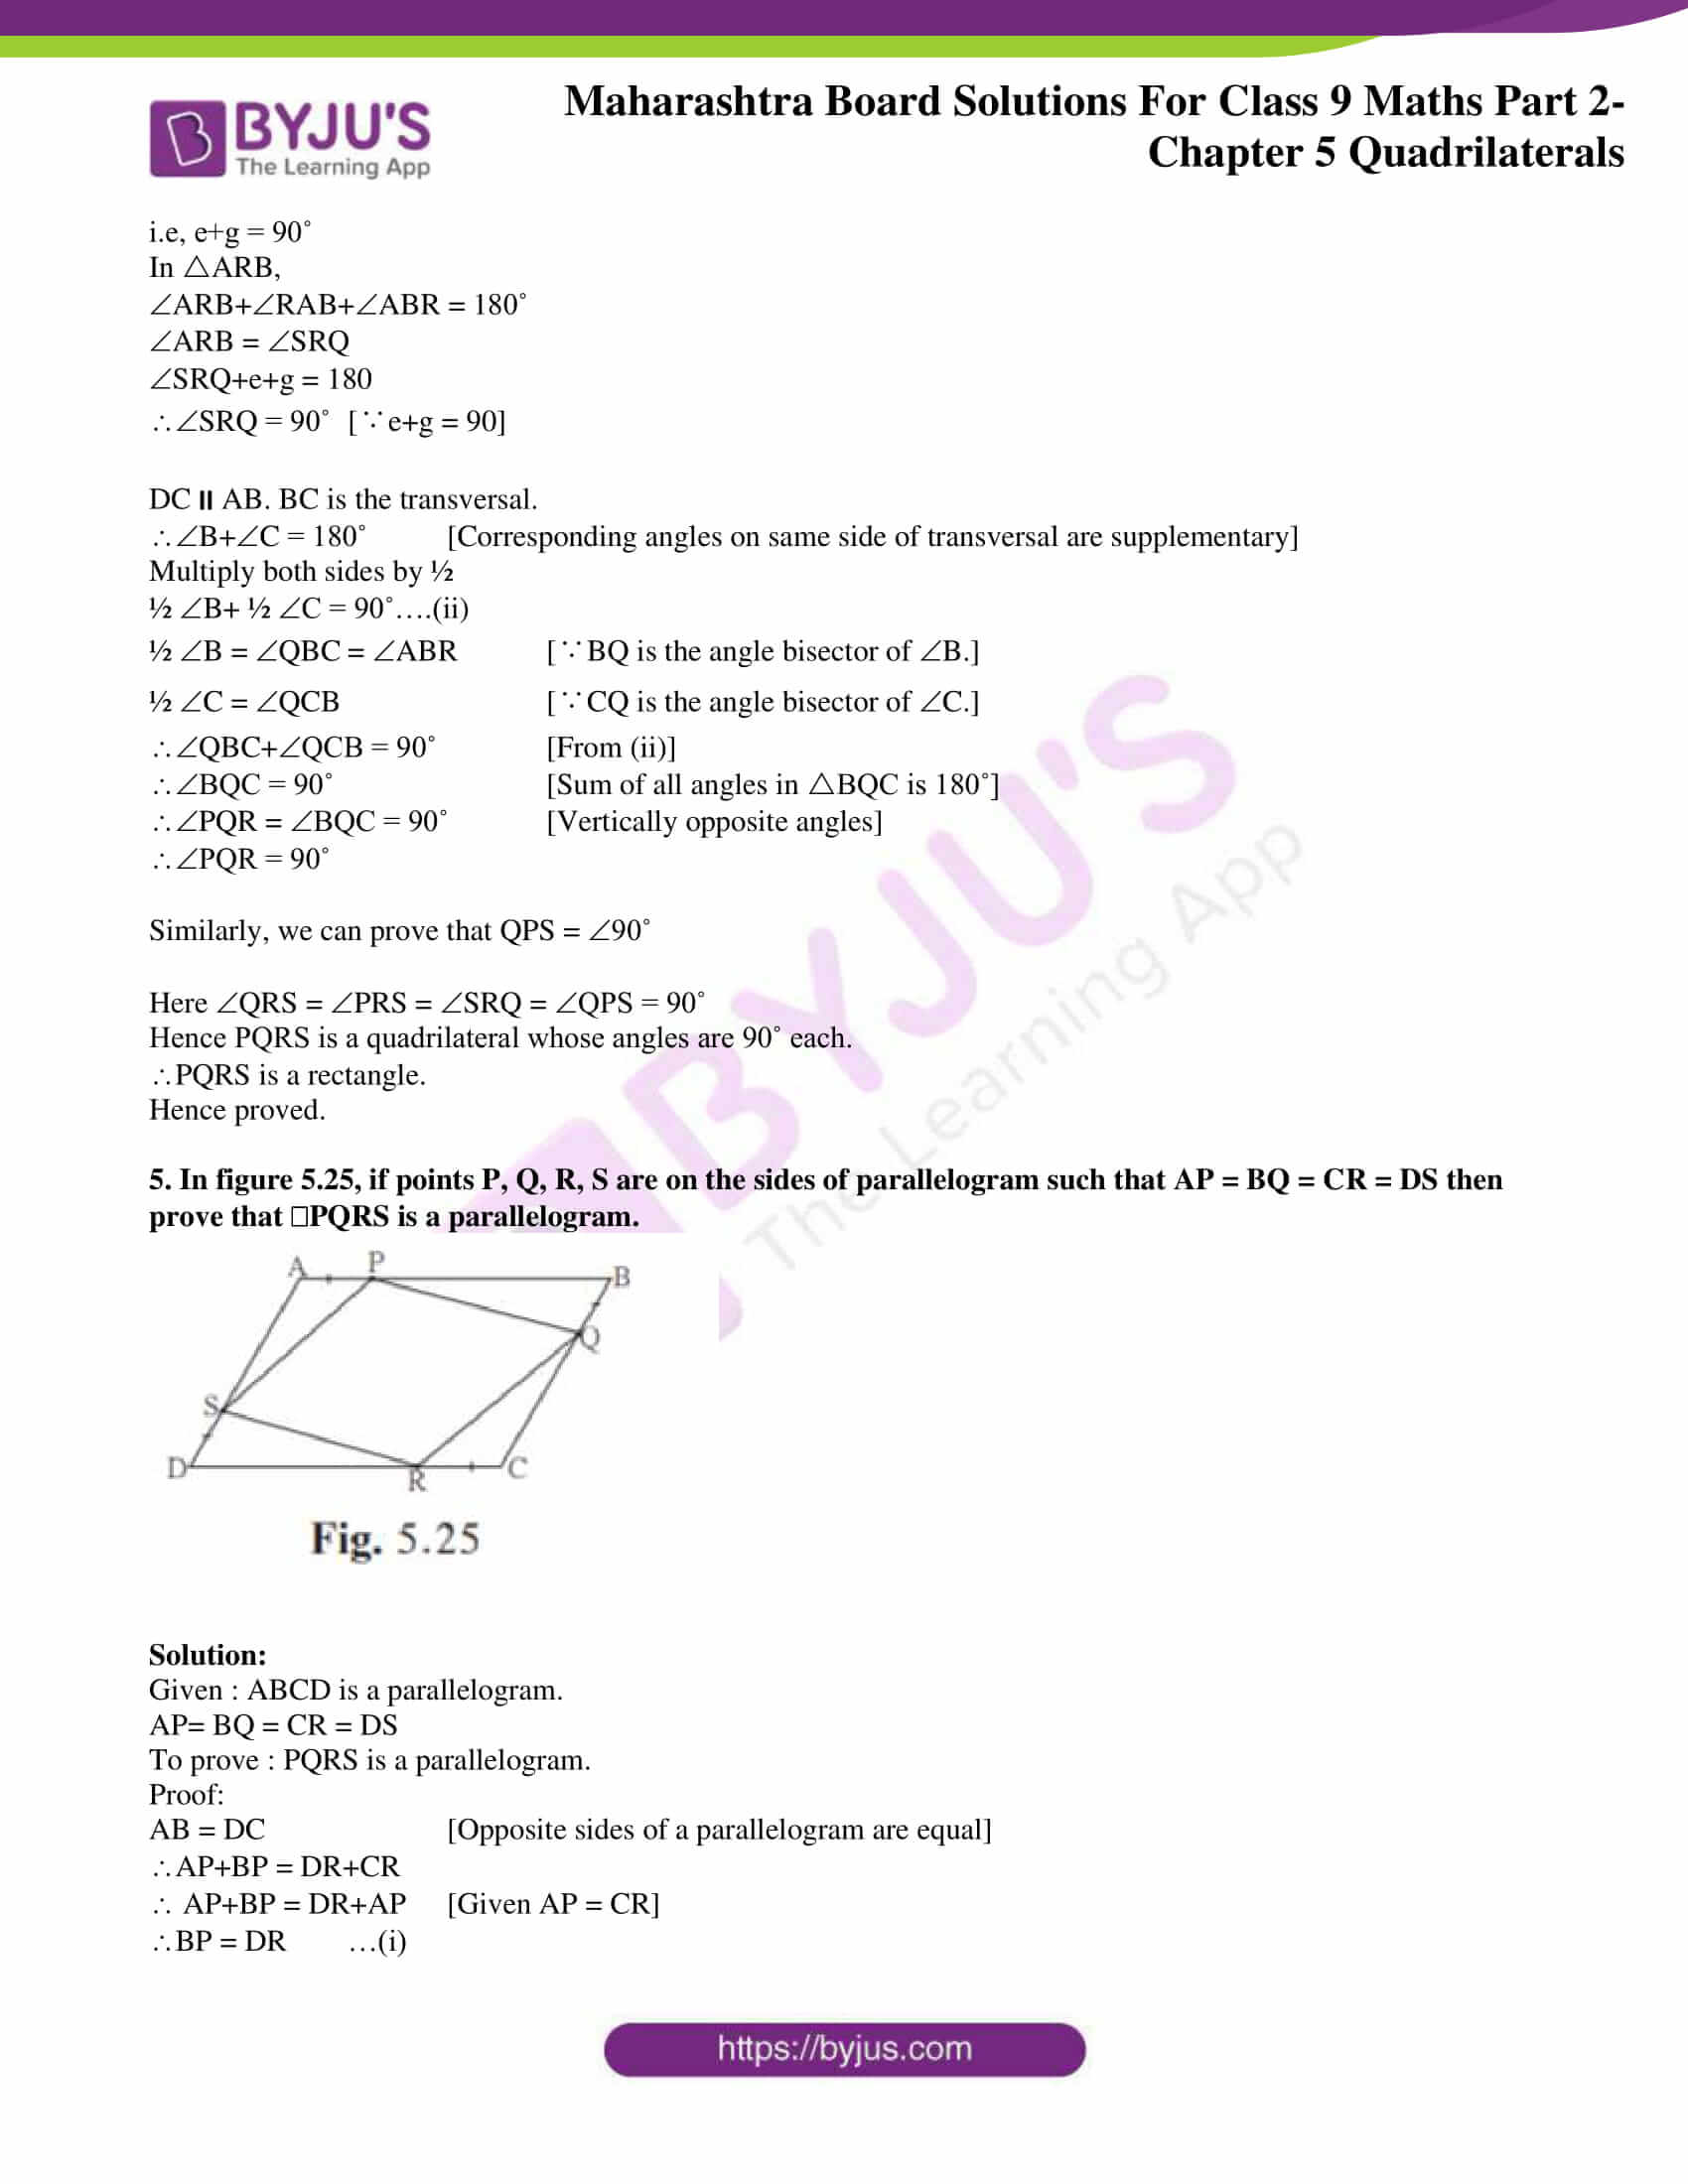 msbshse solutions for class 9 maths part 2 chapter 5 09